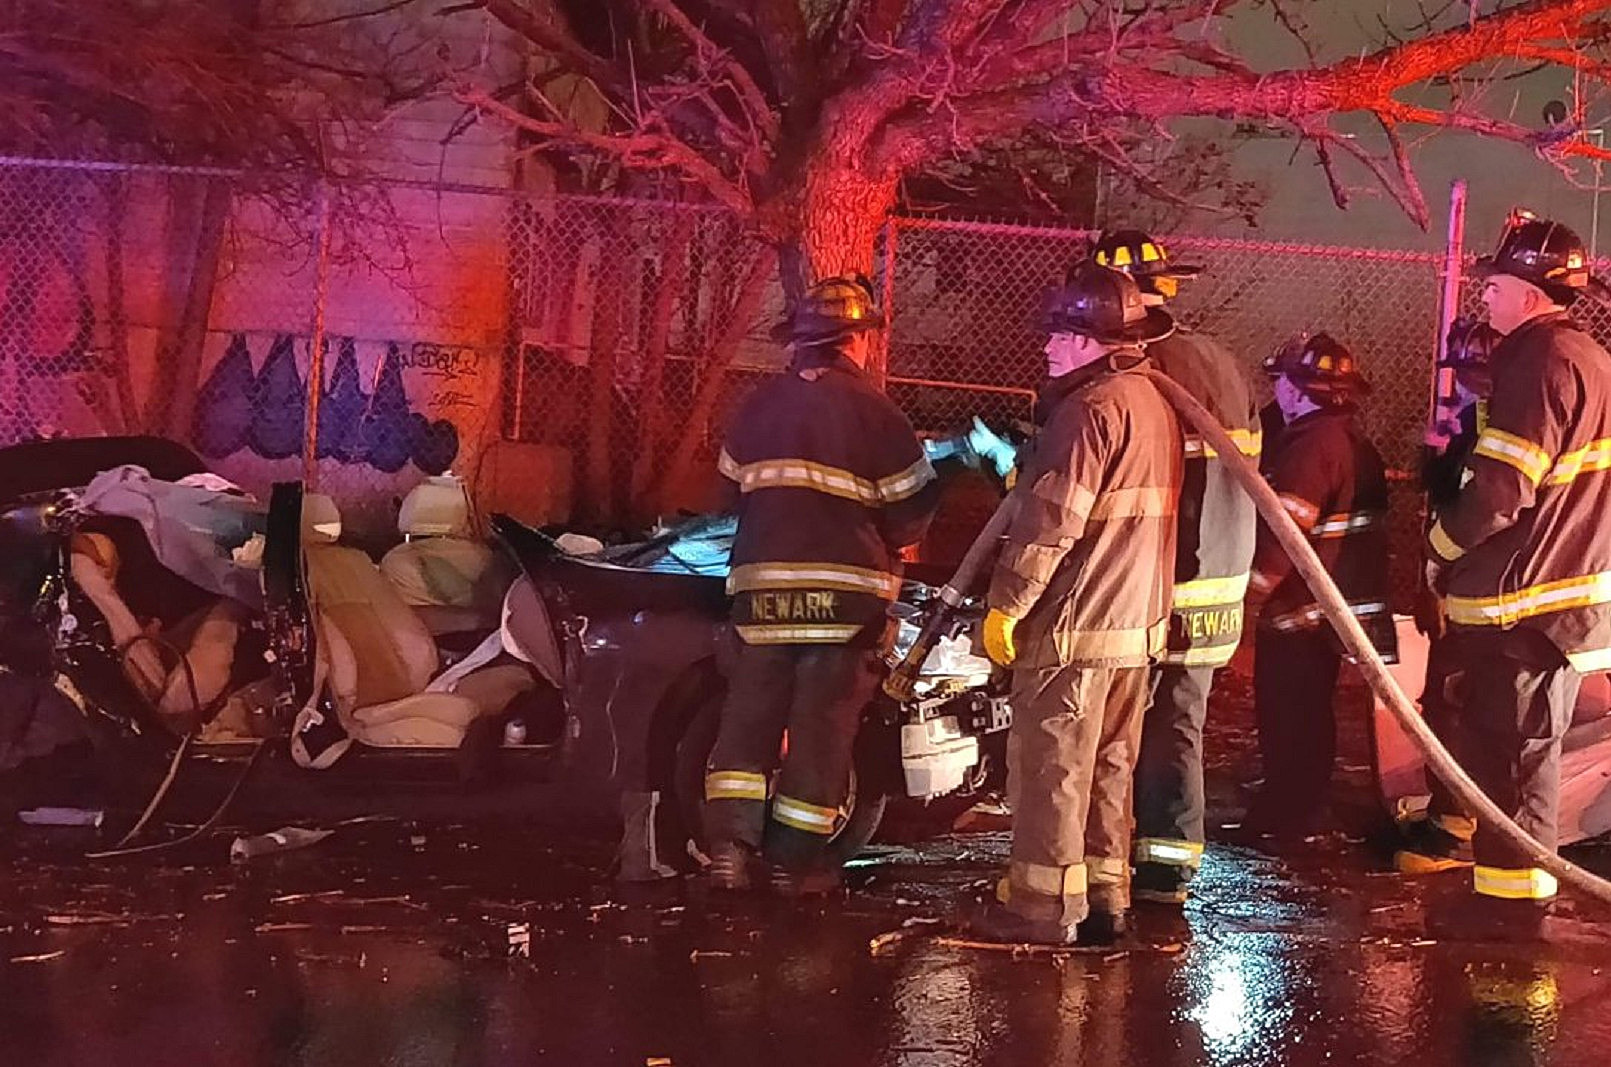 Car that struck a tree on 15th Ave in Newark